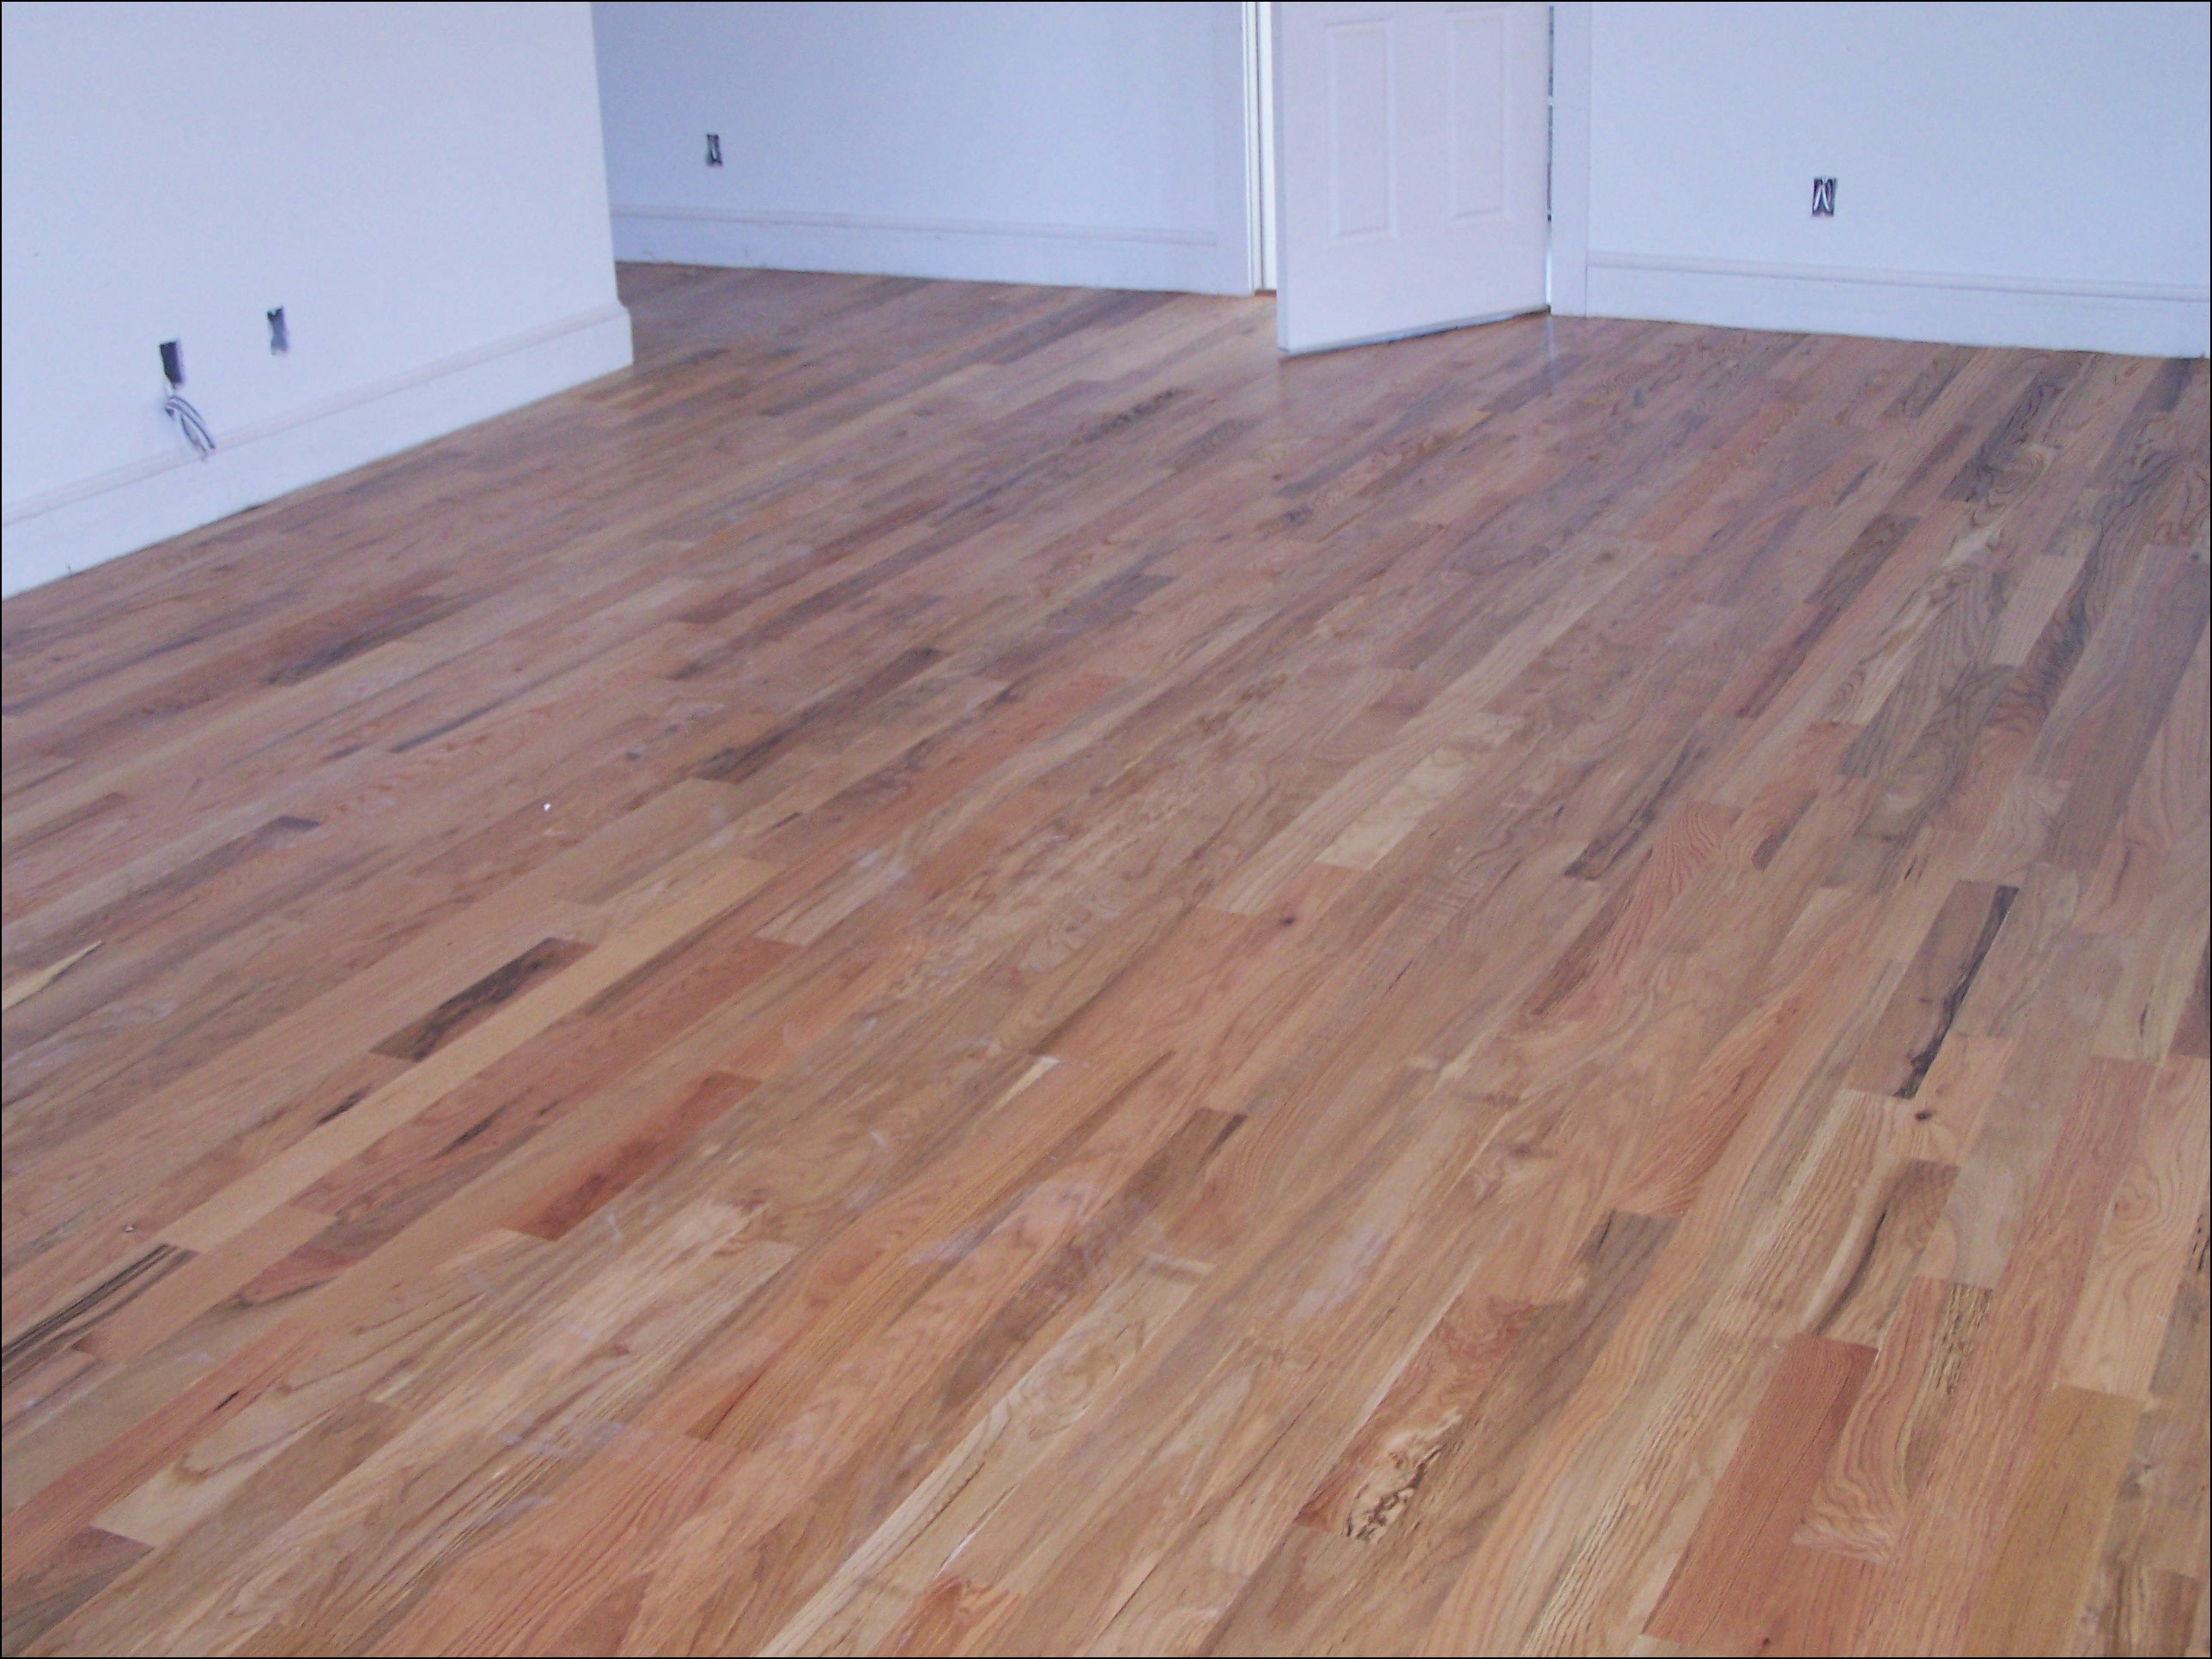 bruce prefinished hardwood flooring reviews of wide plank flooring ideas with wide plank wood flooring lowes red oak wood flooring red oak wood floors of wide plank